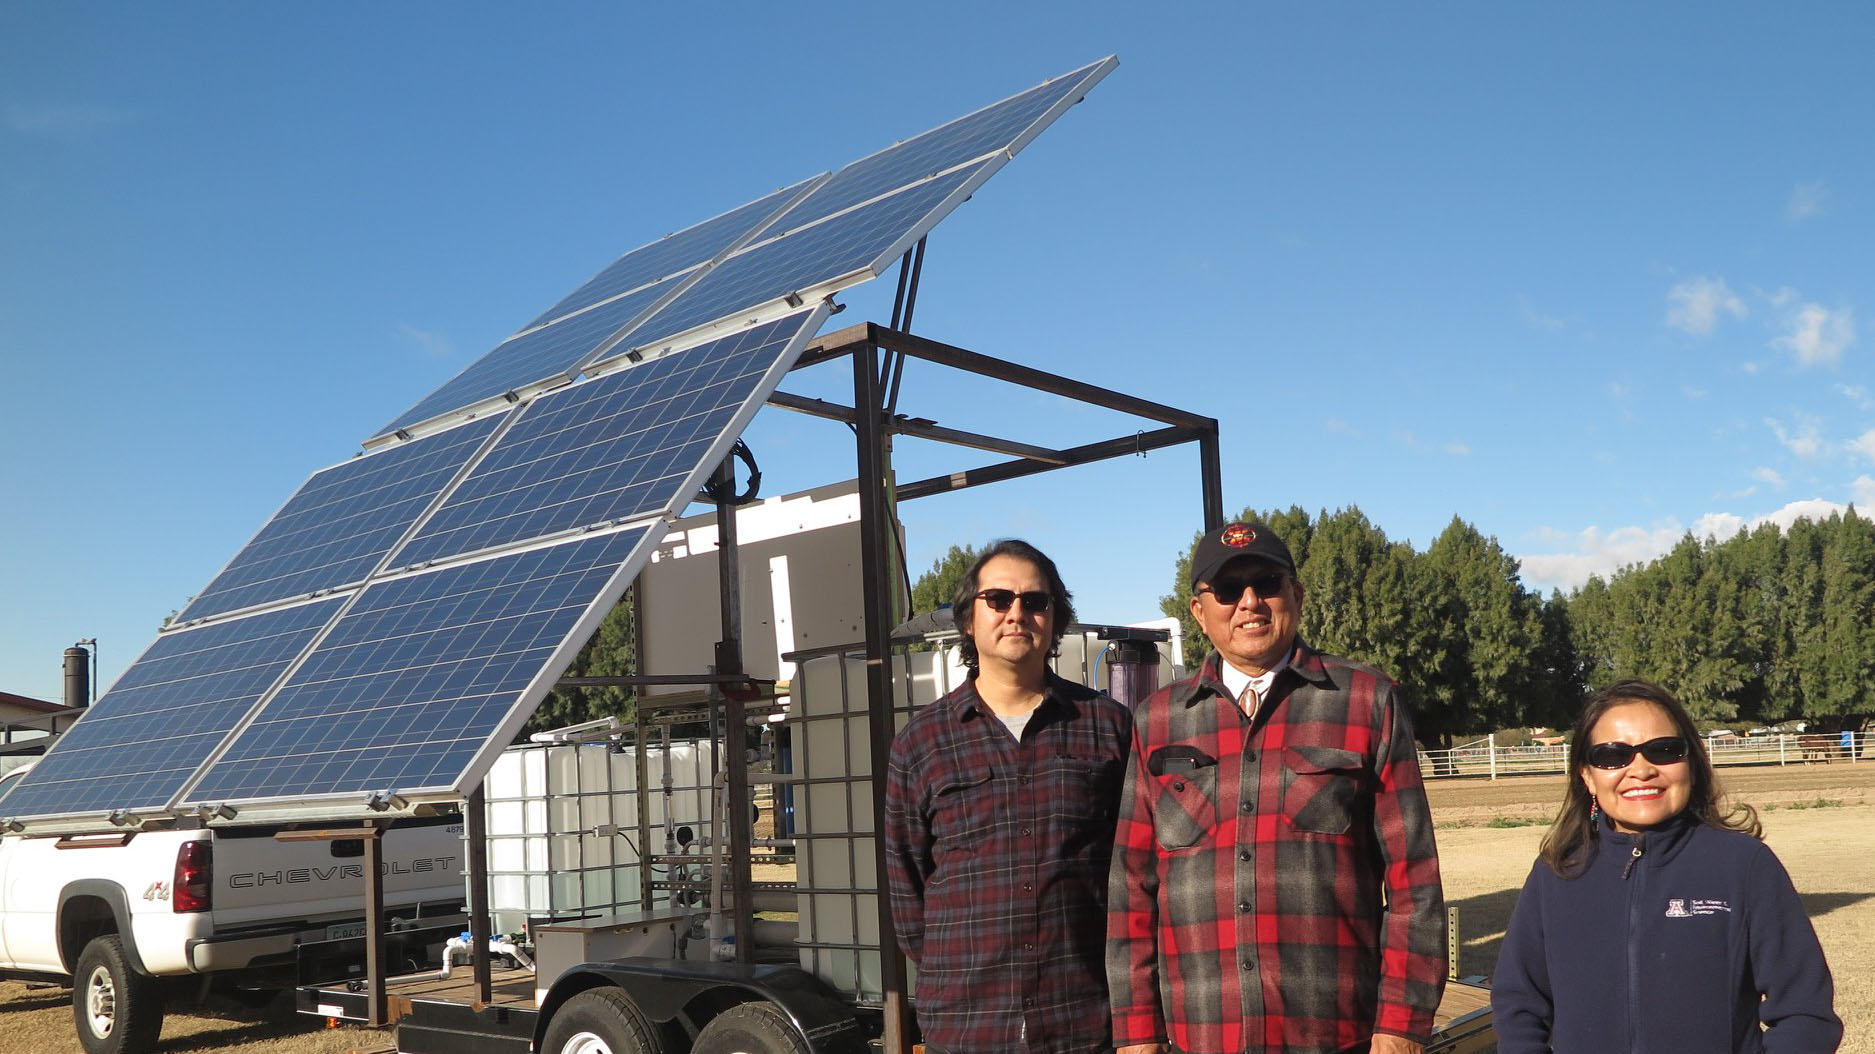 UA and National Science Foundation officials with a solar powered purification system on the Navajo Nation.